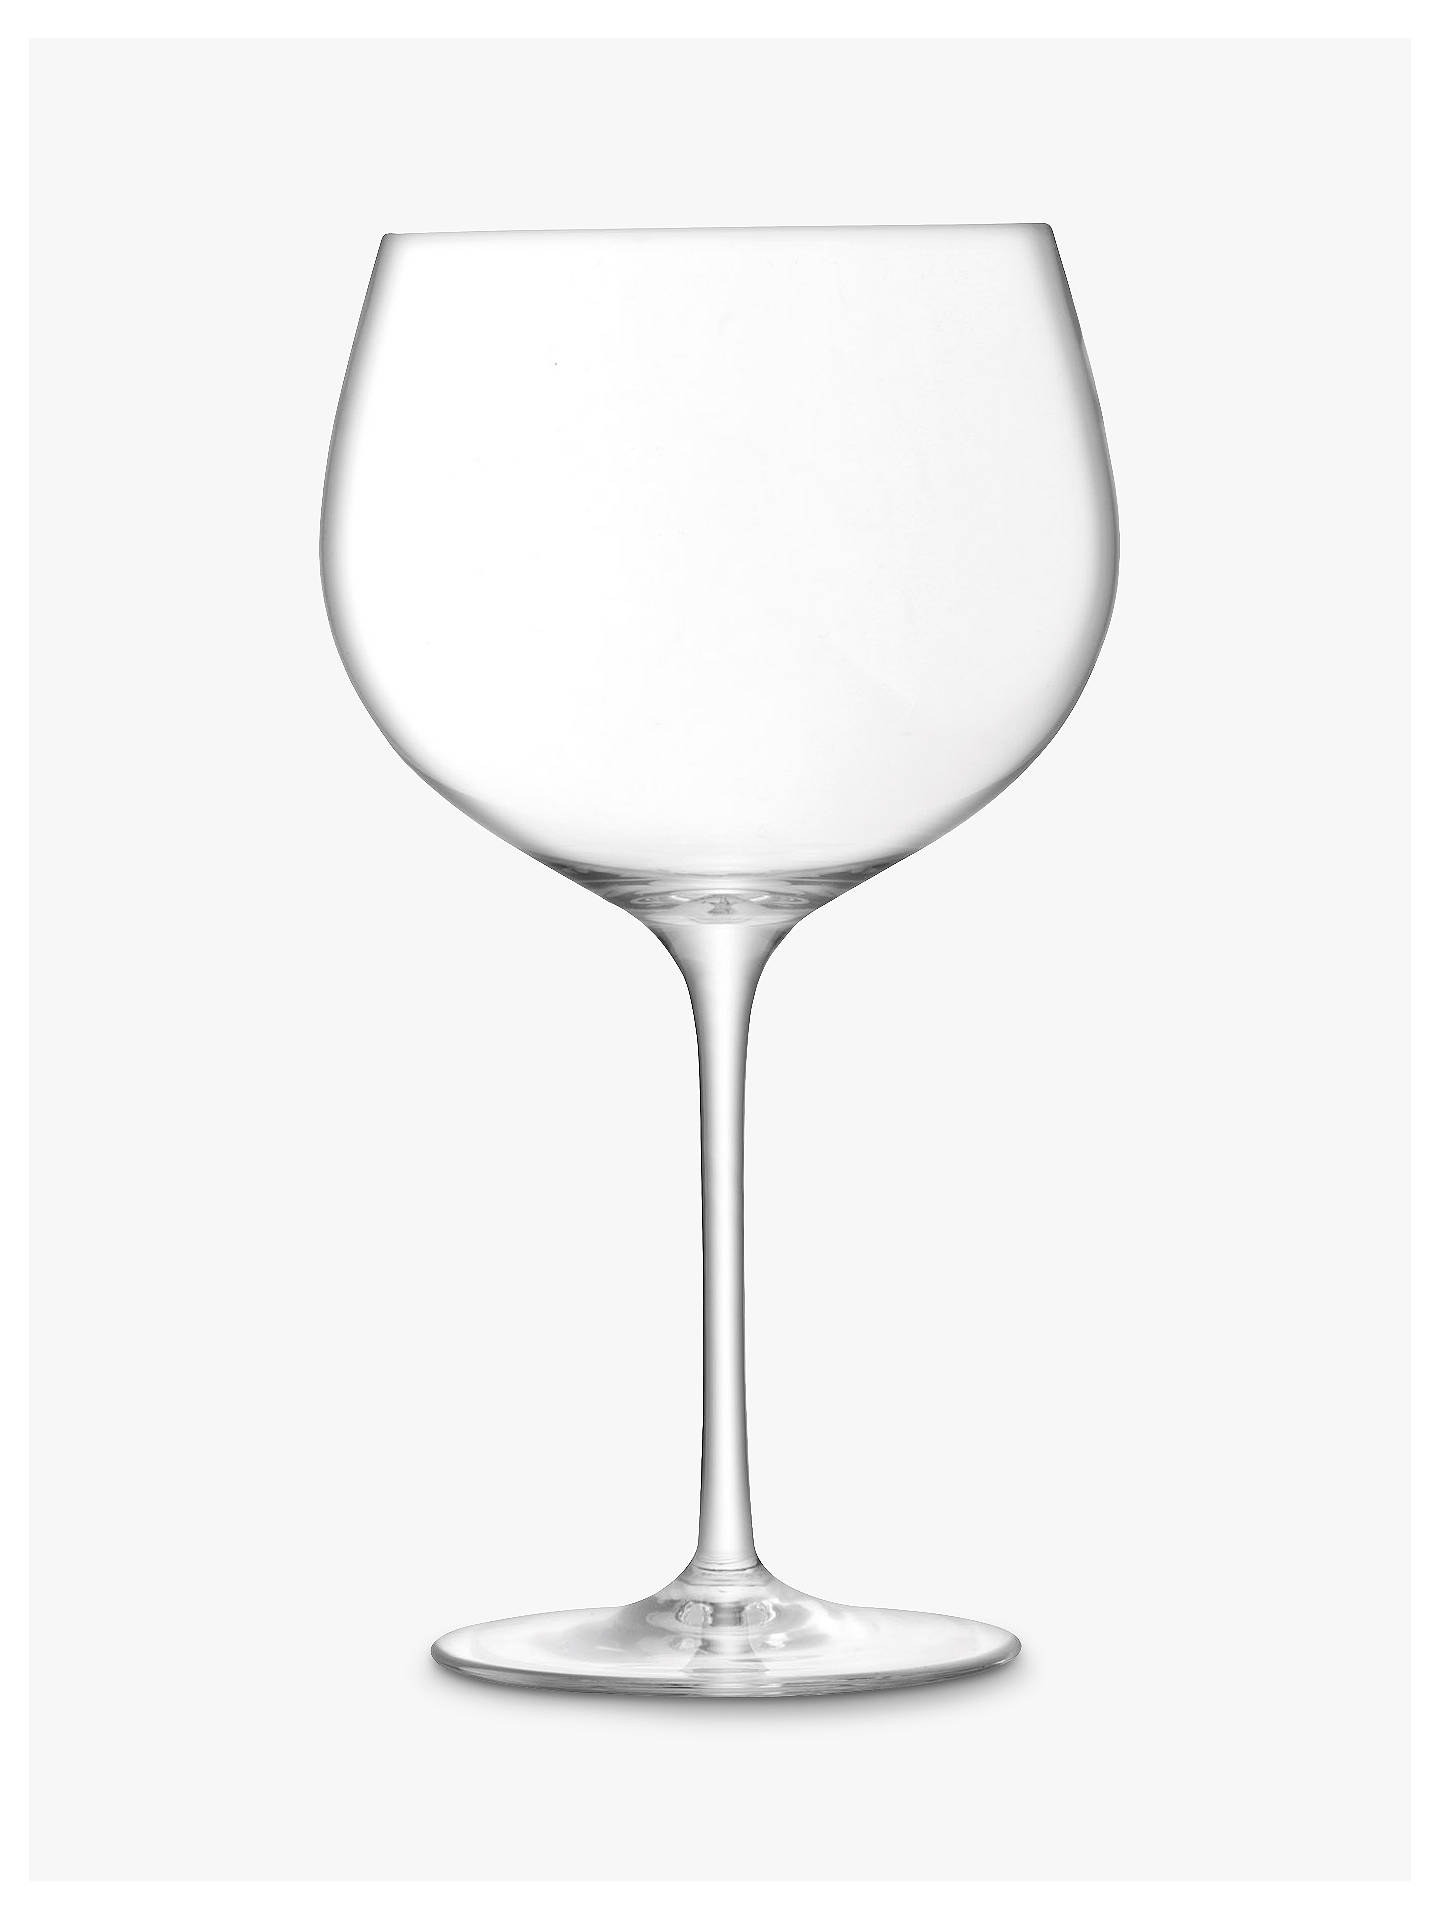 Buy LSA International Gin Balloon Glass, 680ml, Set of 4 Online at johnlewis.com